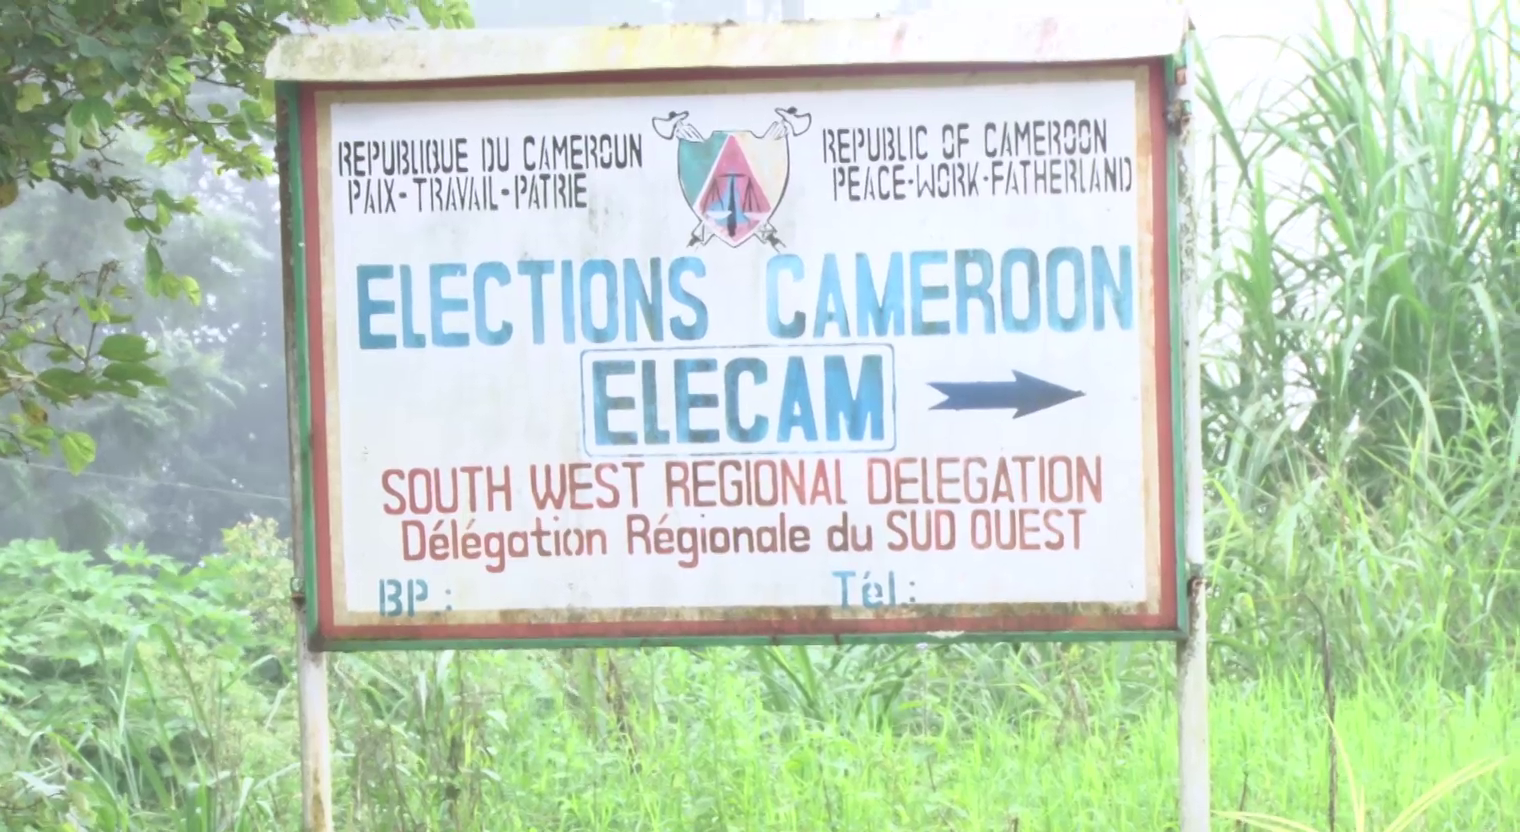 ELECAM South West has seen a low turn out this year in its electoral roll